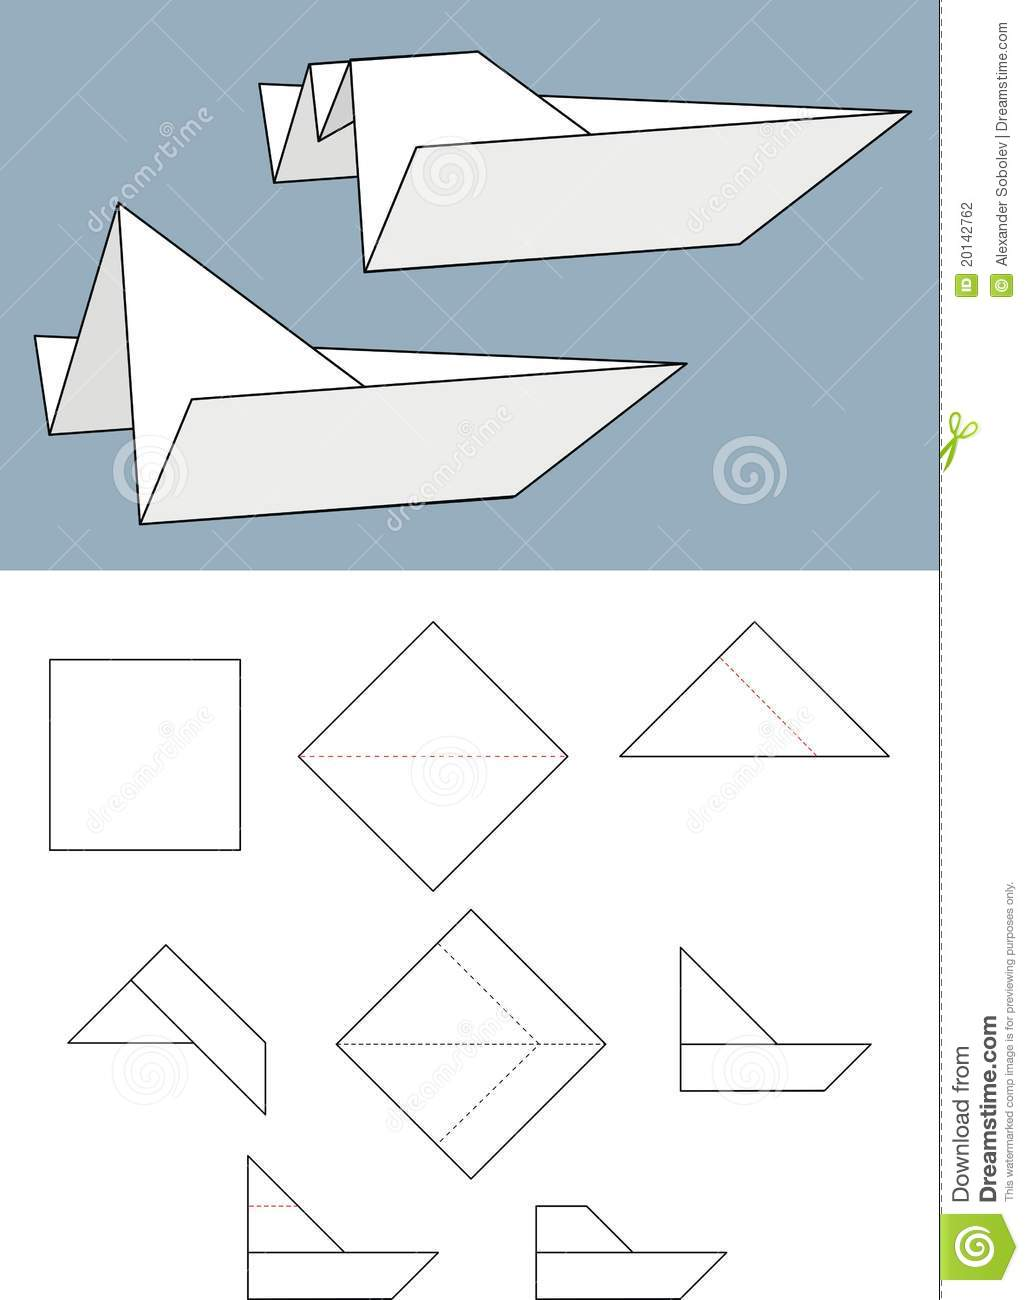 Paper Boat - Origami. Stock Photography - Image: 20142762